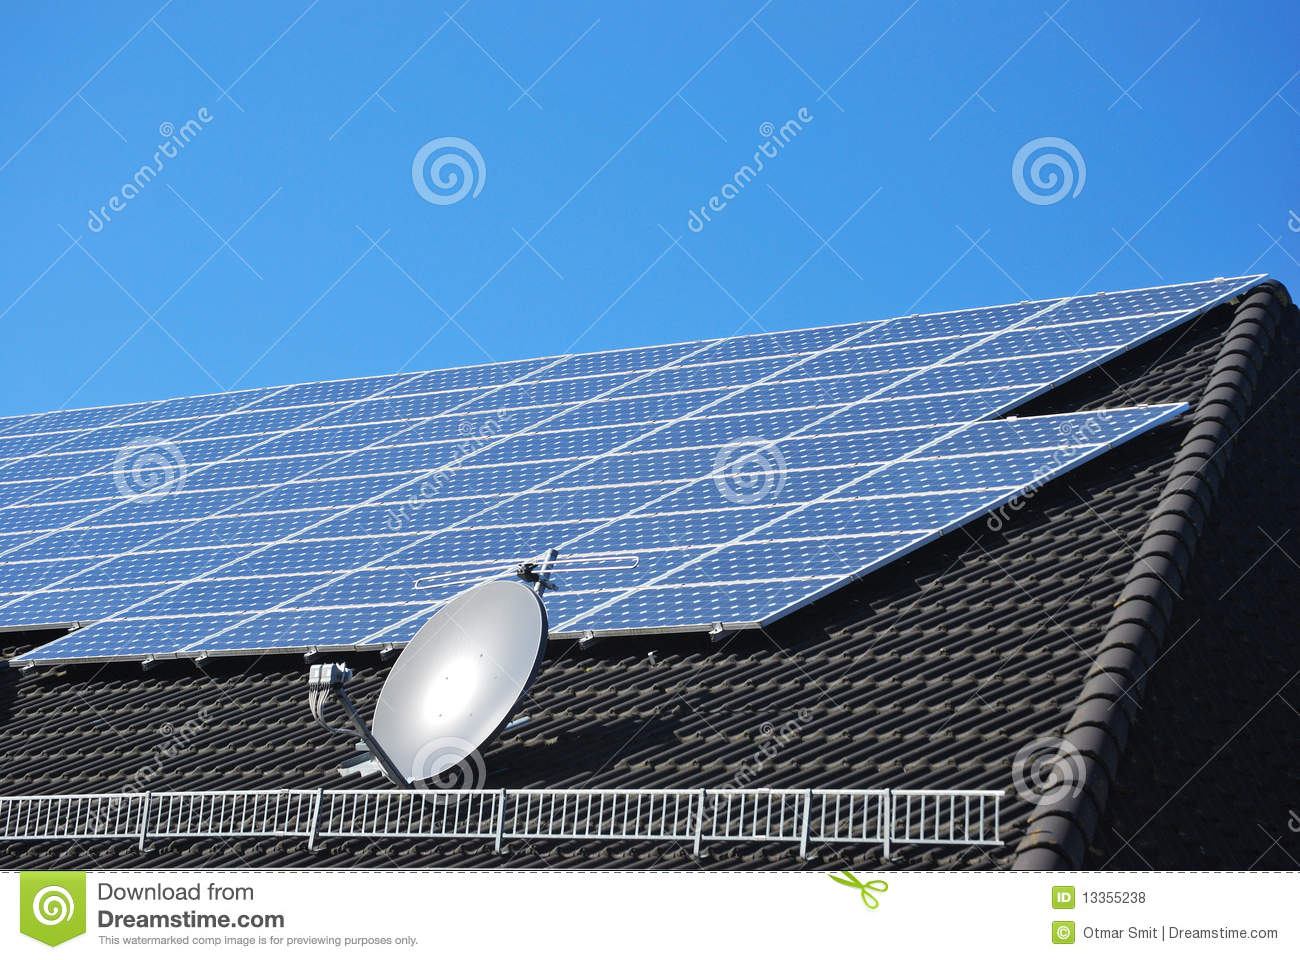 Solar power cells on a black roof